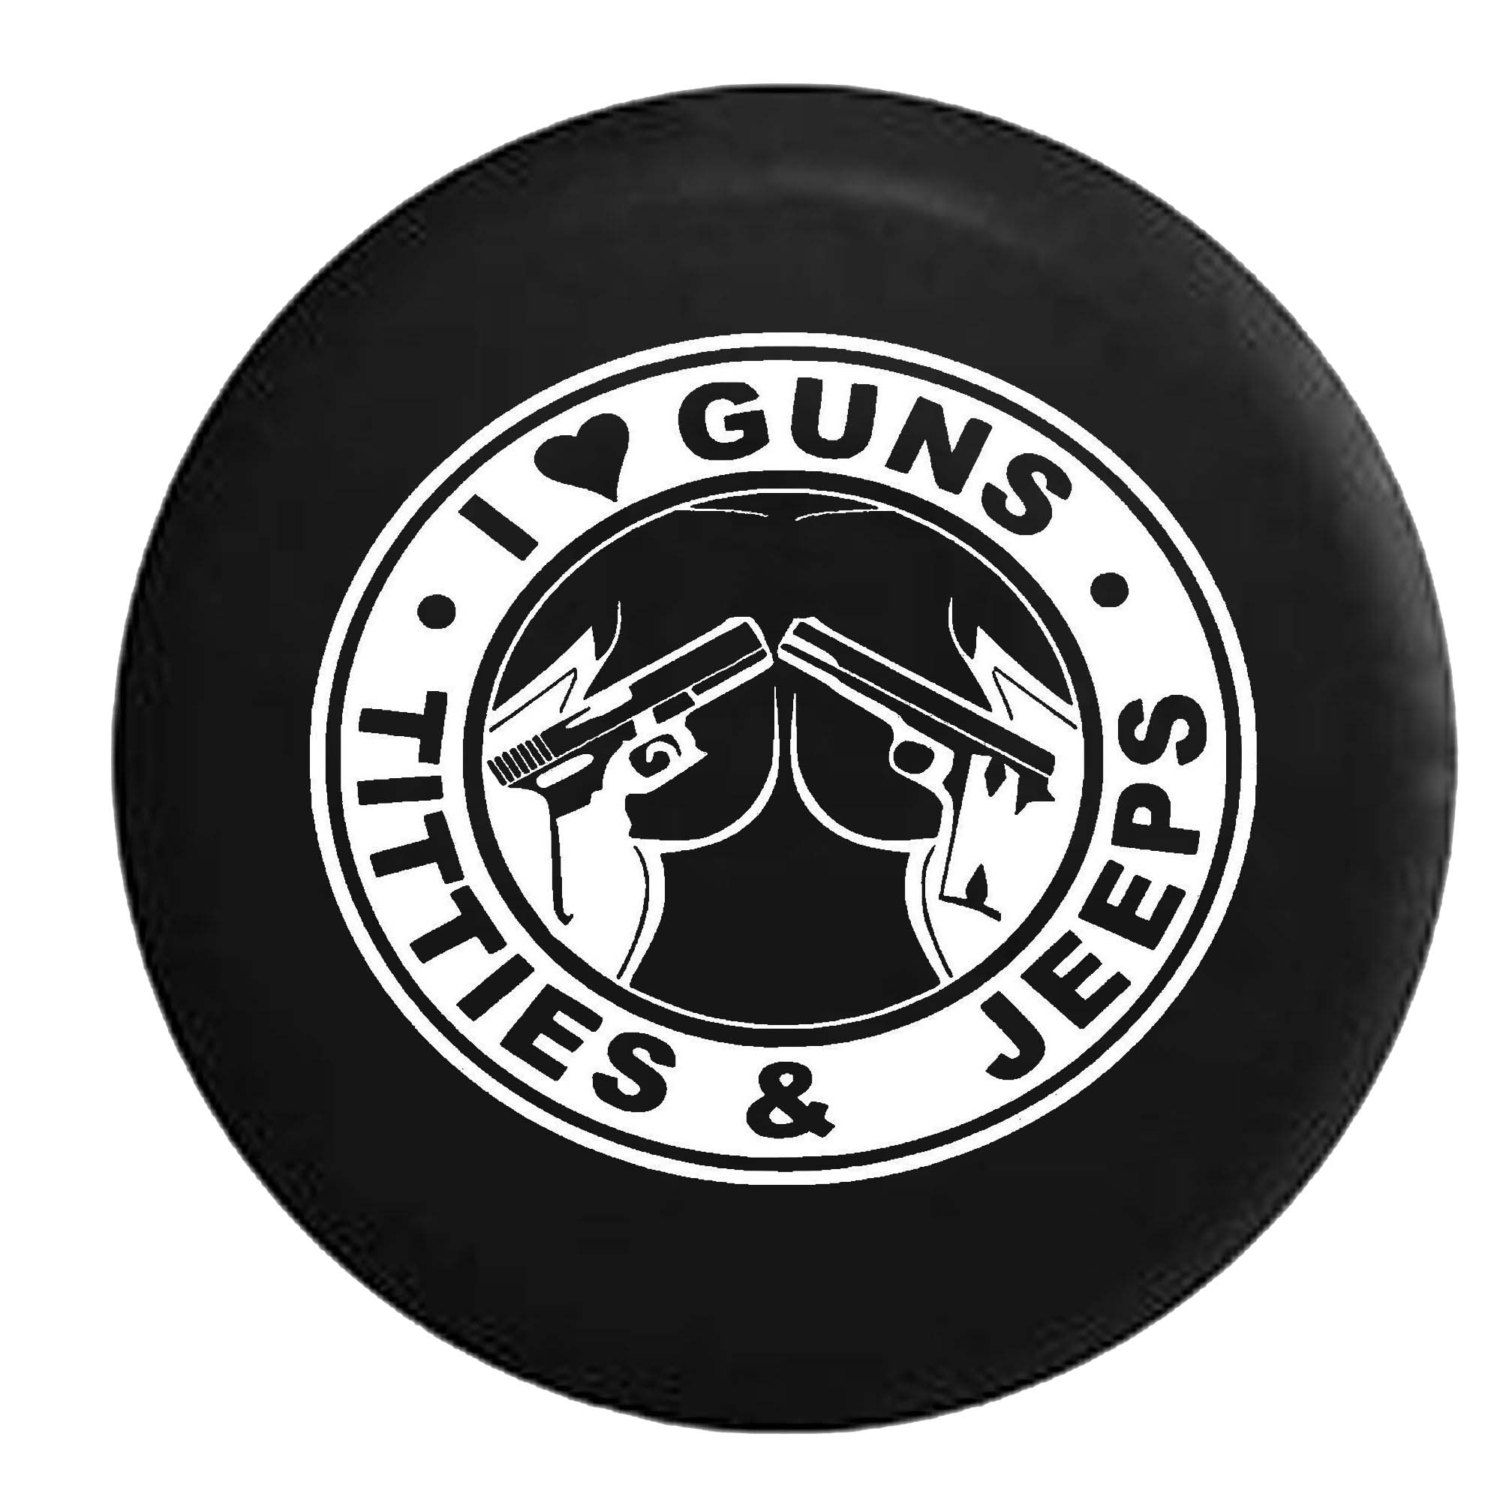 I Love Guns Jeeps Titties 4x4 Outdoor Jeep Camper Spare Tire Cover White Grey Camo Amp Flag